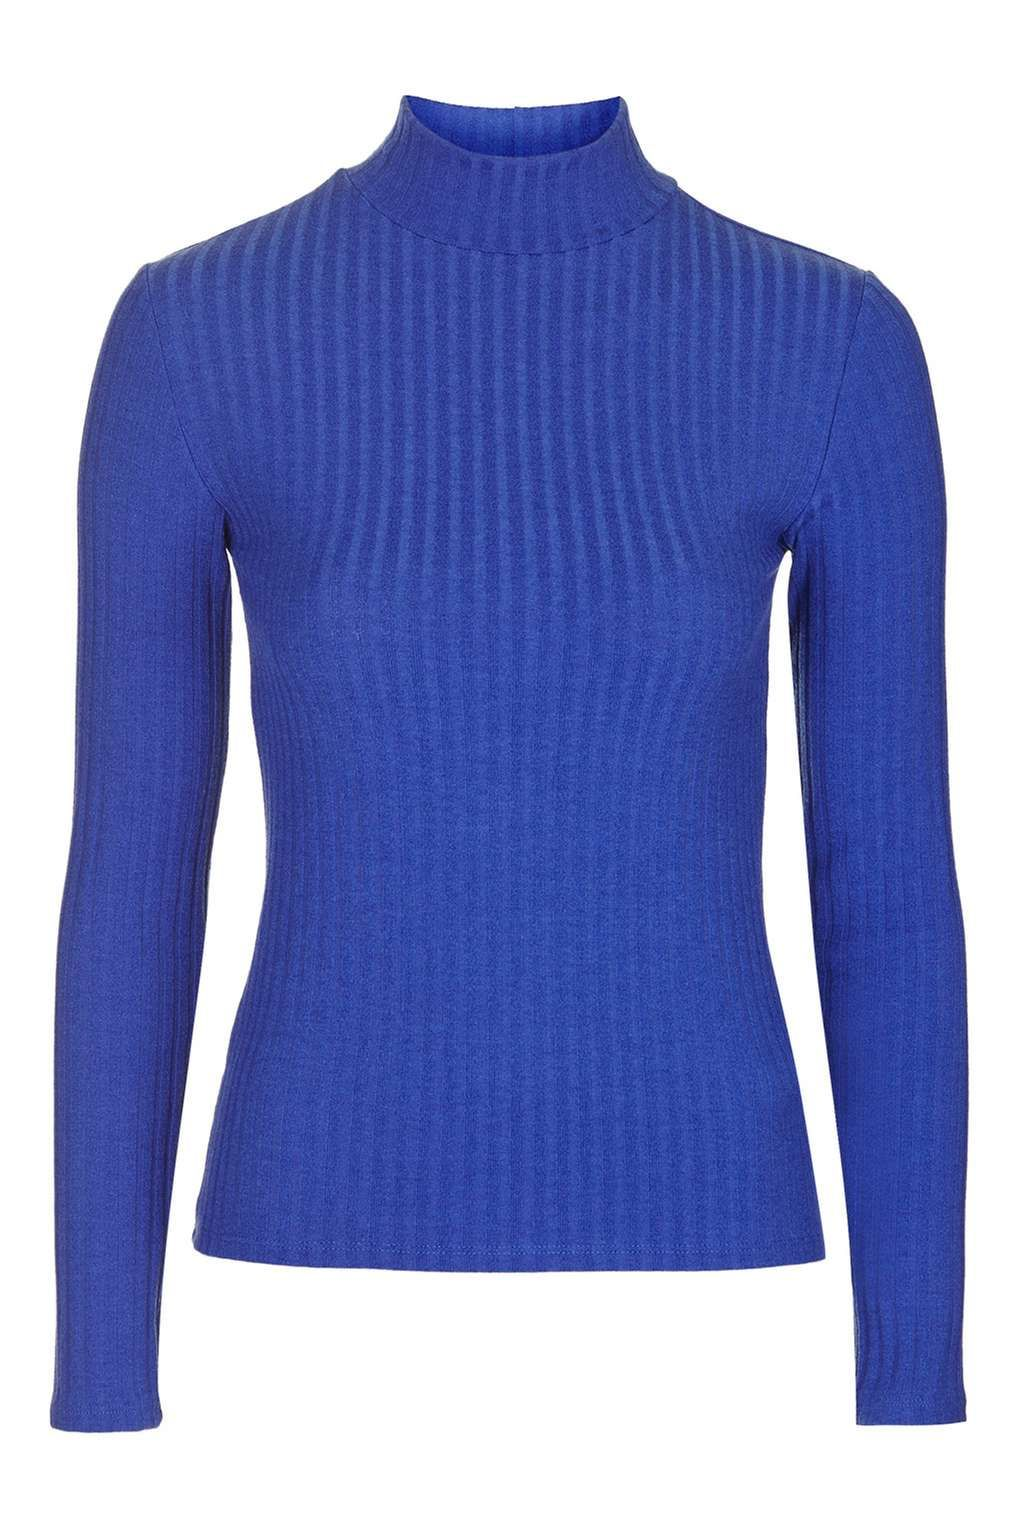 Long Sleeve Wide Rib Roll Neck - Tops - Clothing - Topshop